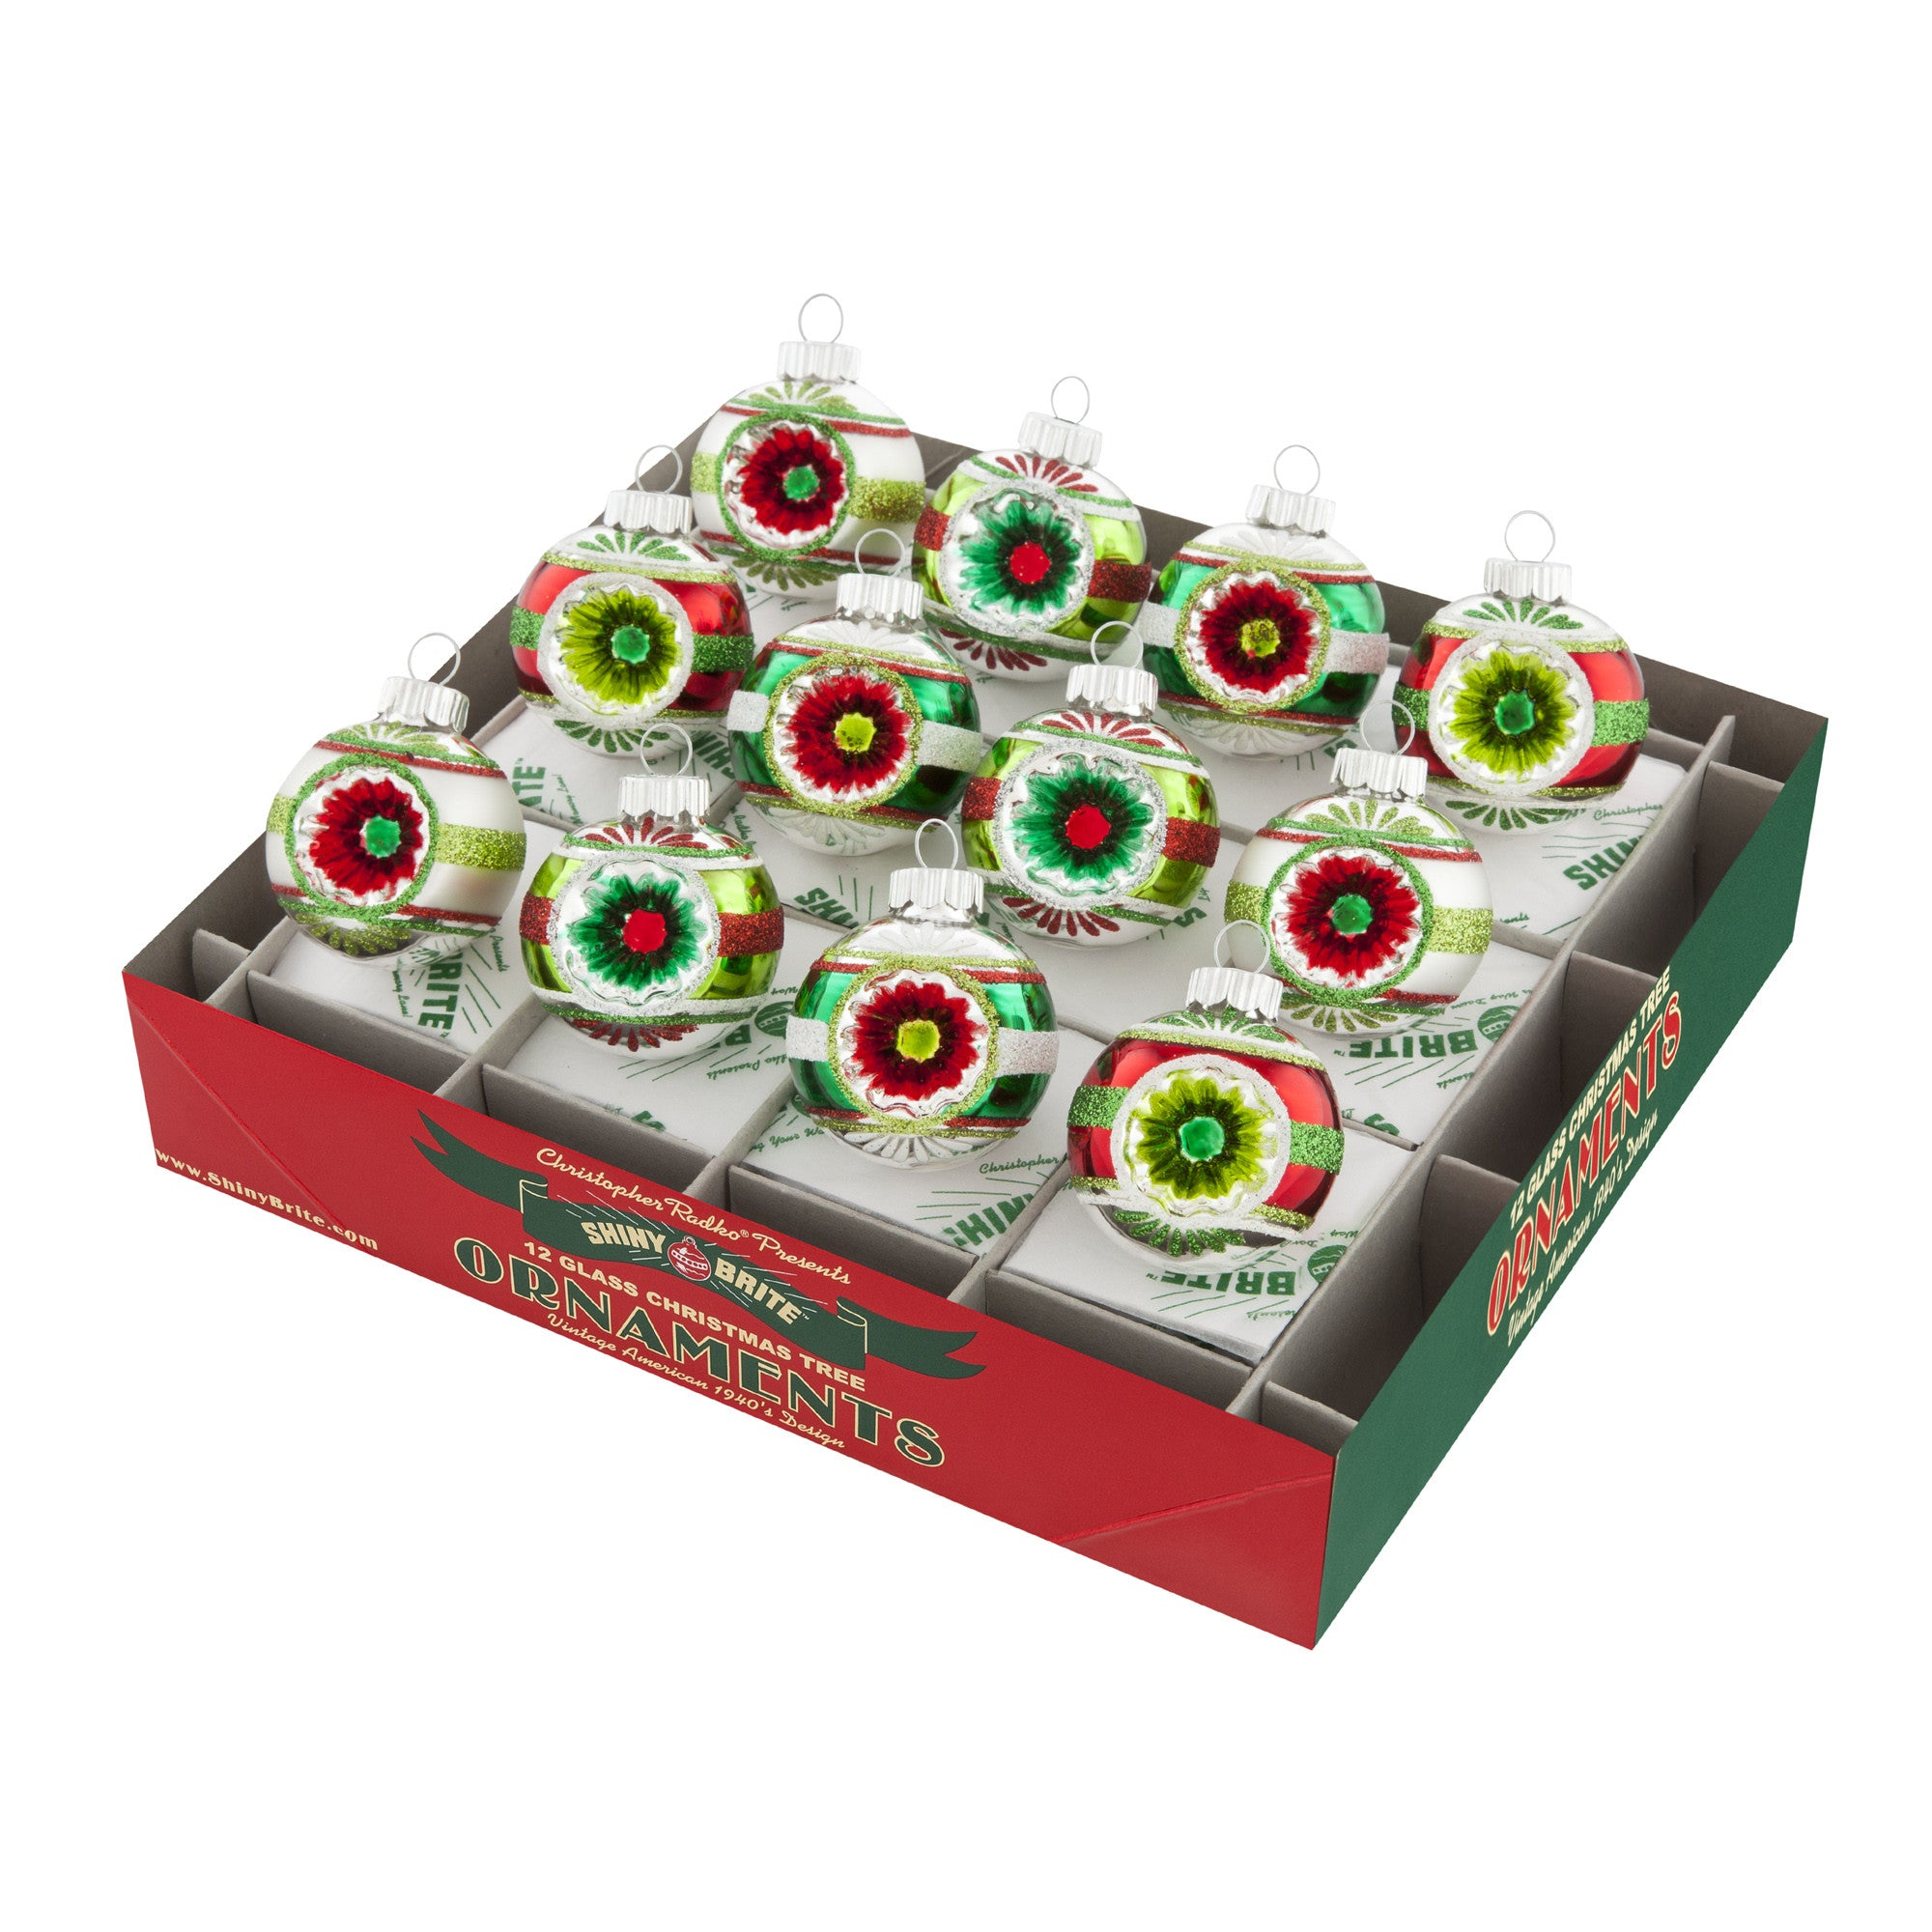 Shiny Brite Holiday Splendor Round Ornaments with Reflectors - 1.75""